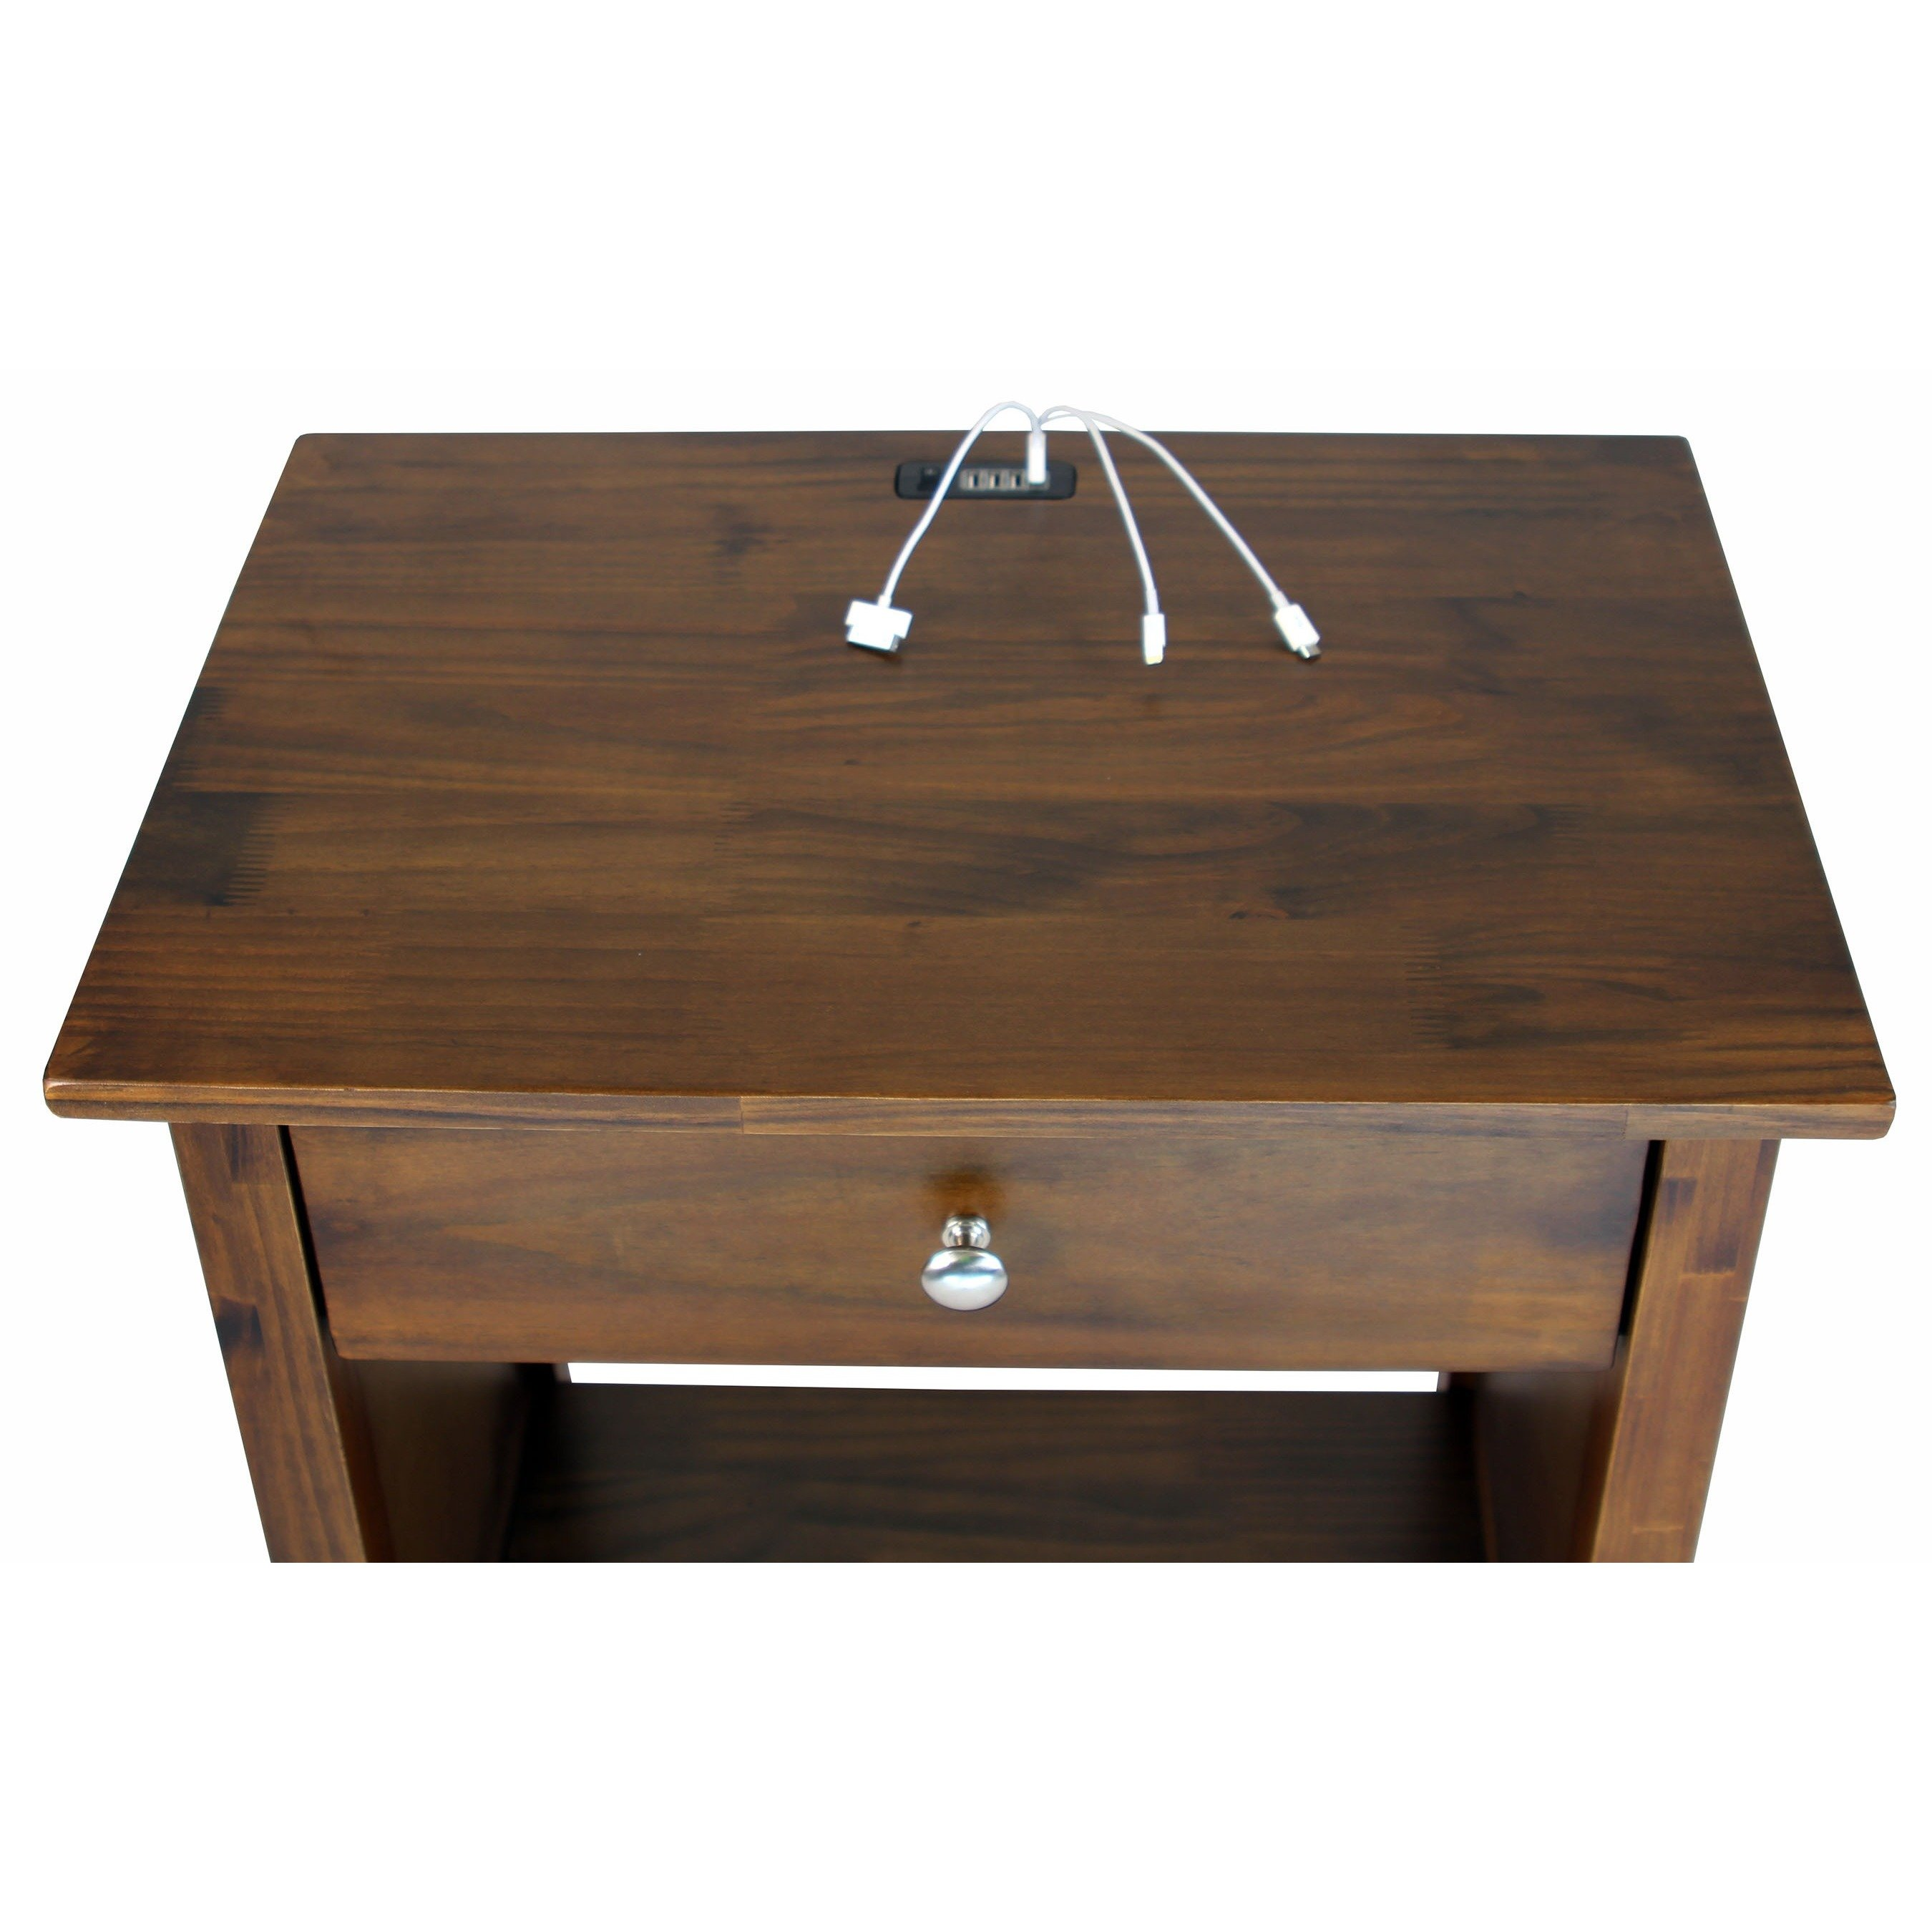 vanderbilt nightstand end table with usb ports free accent tables charging station shipping today beech bedside ashley chairside oak coffee plans glass stacking west elm outdoor